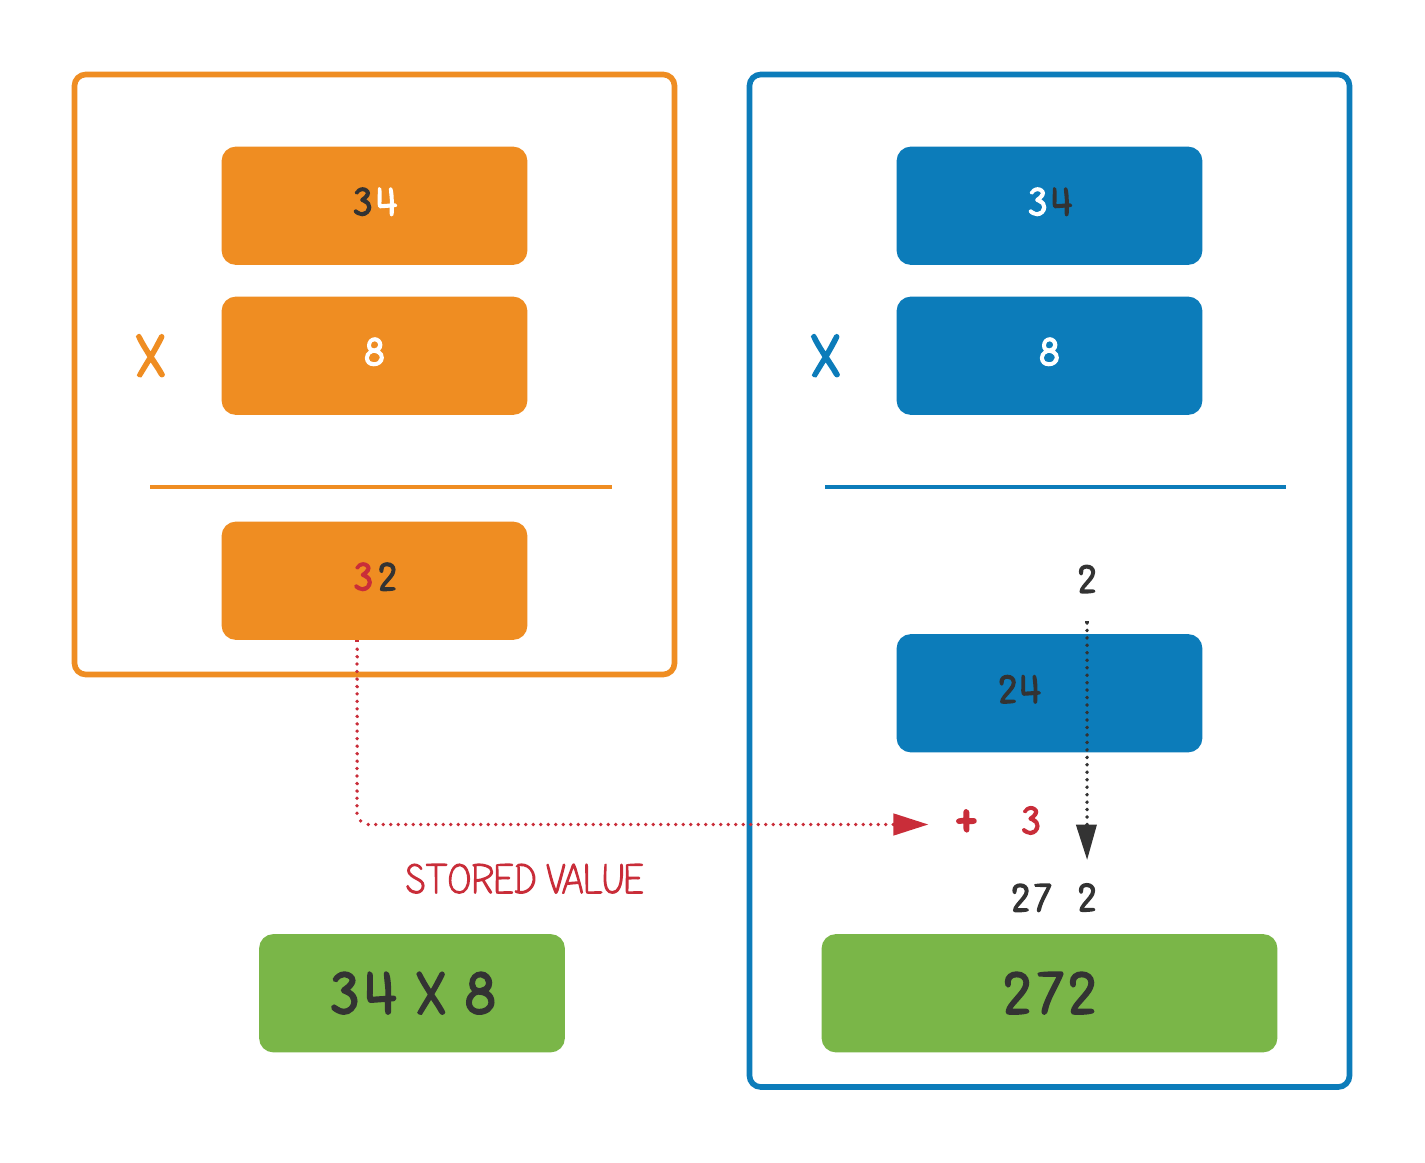 Multiplication of 34 and 8